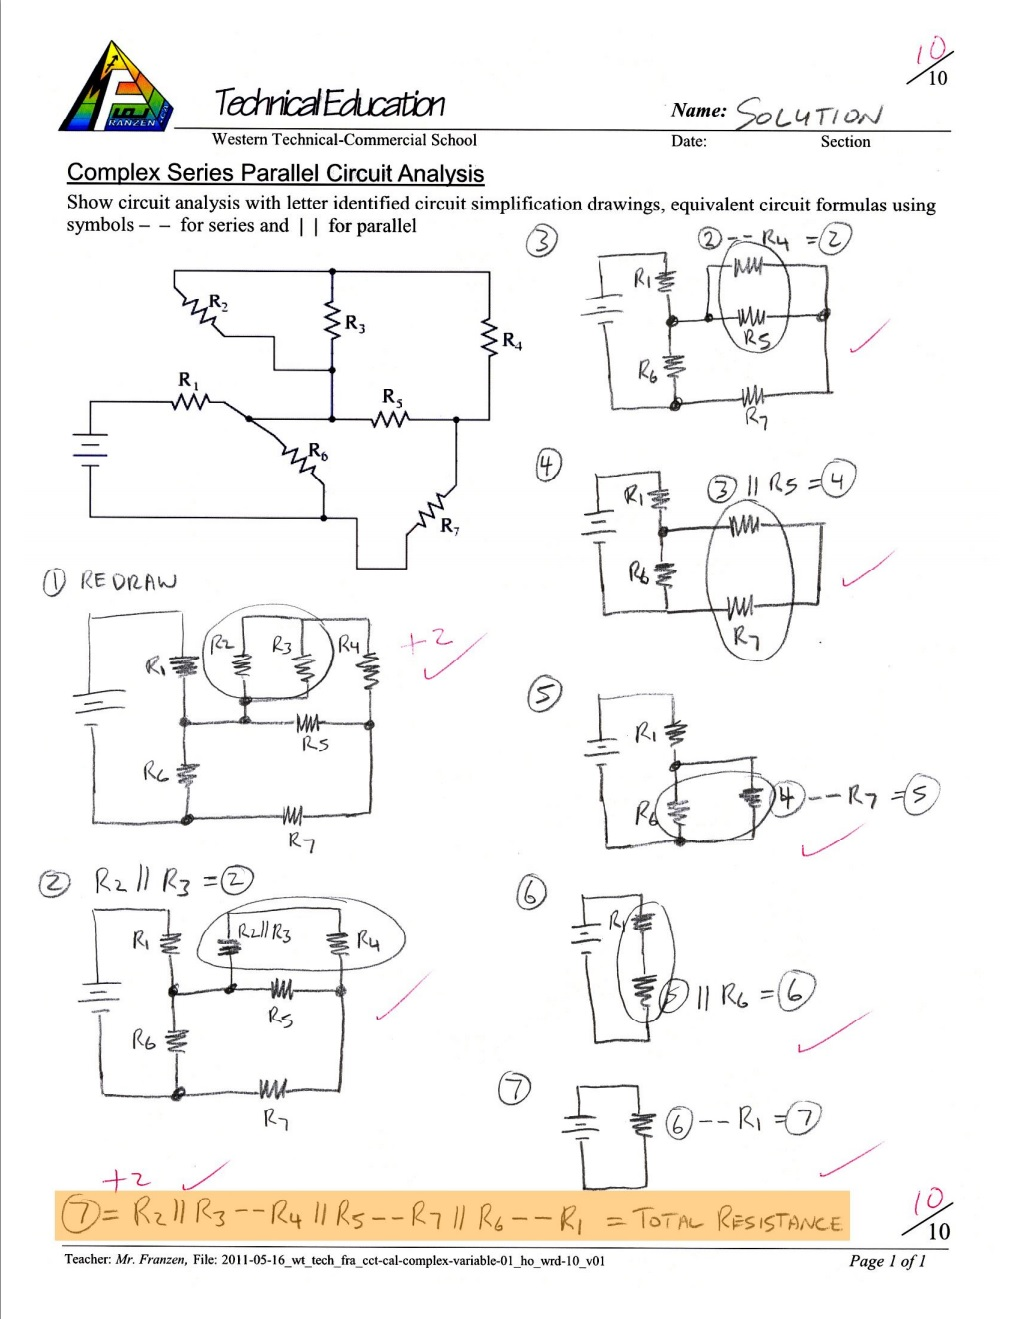 Unit 1 Computer Engineering Technology Robotics And Control Systems Make A Parallel Circuit Complex Series Analysis Calculations